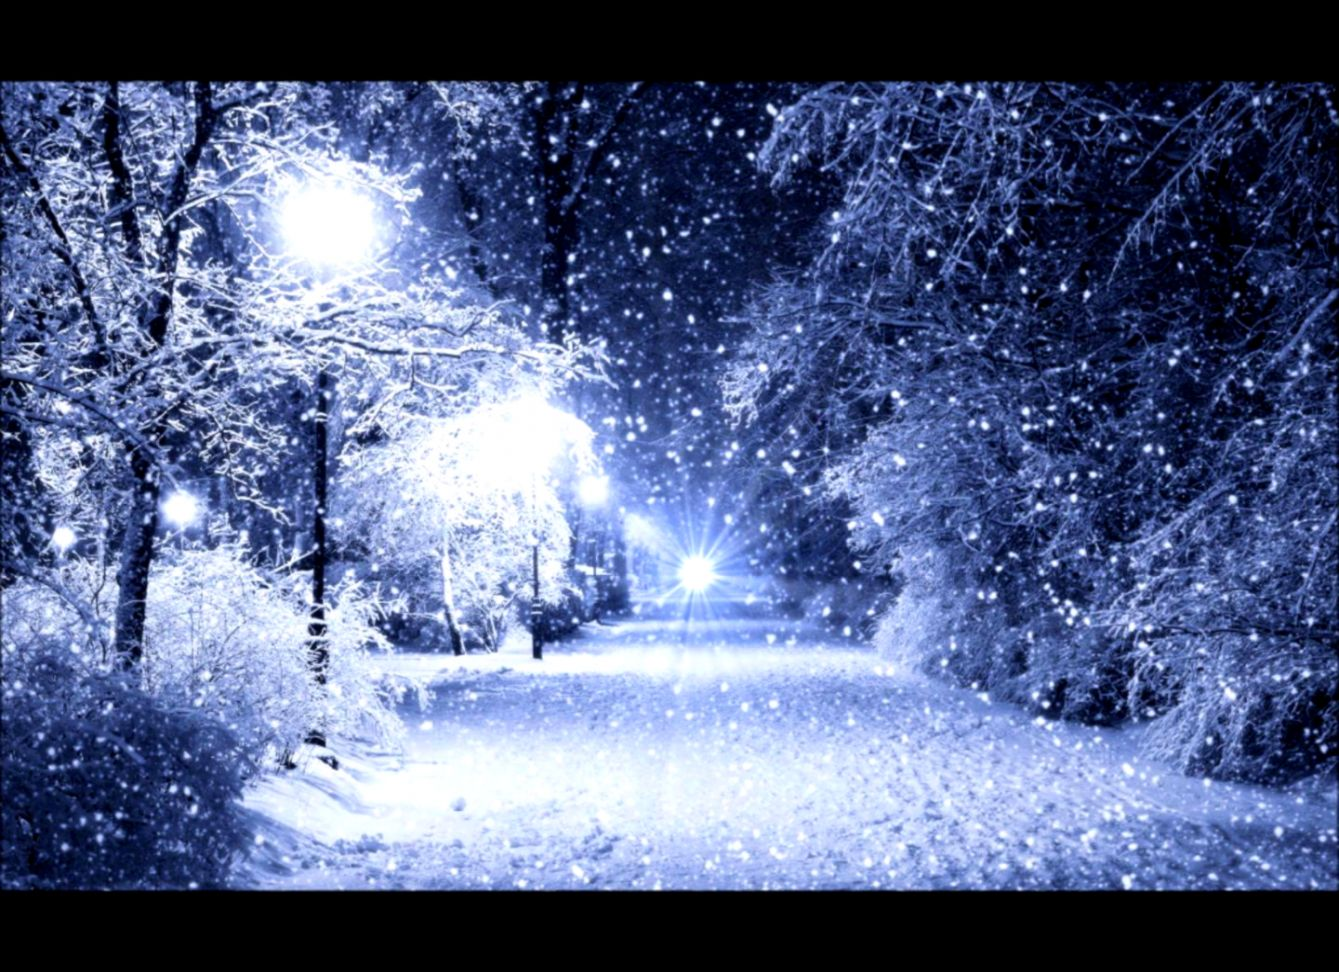 On a snowy winter night   YouTube